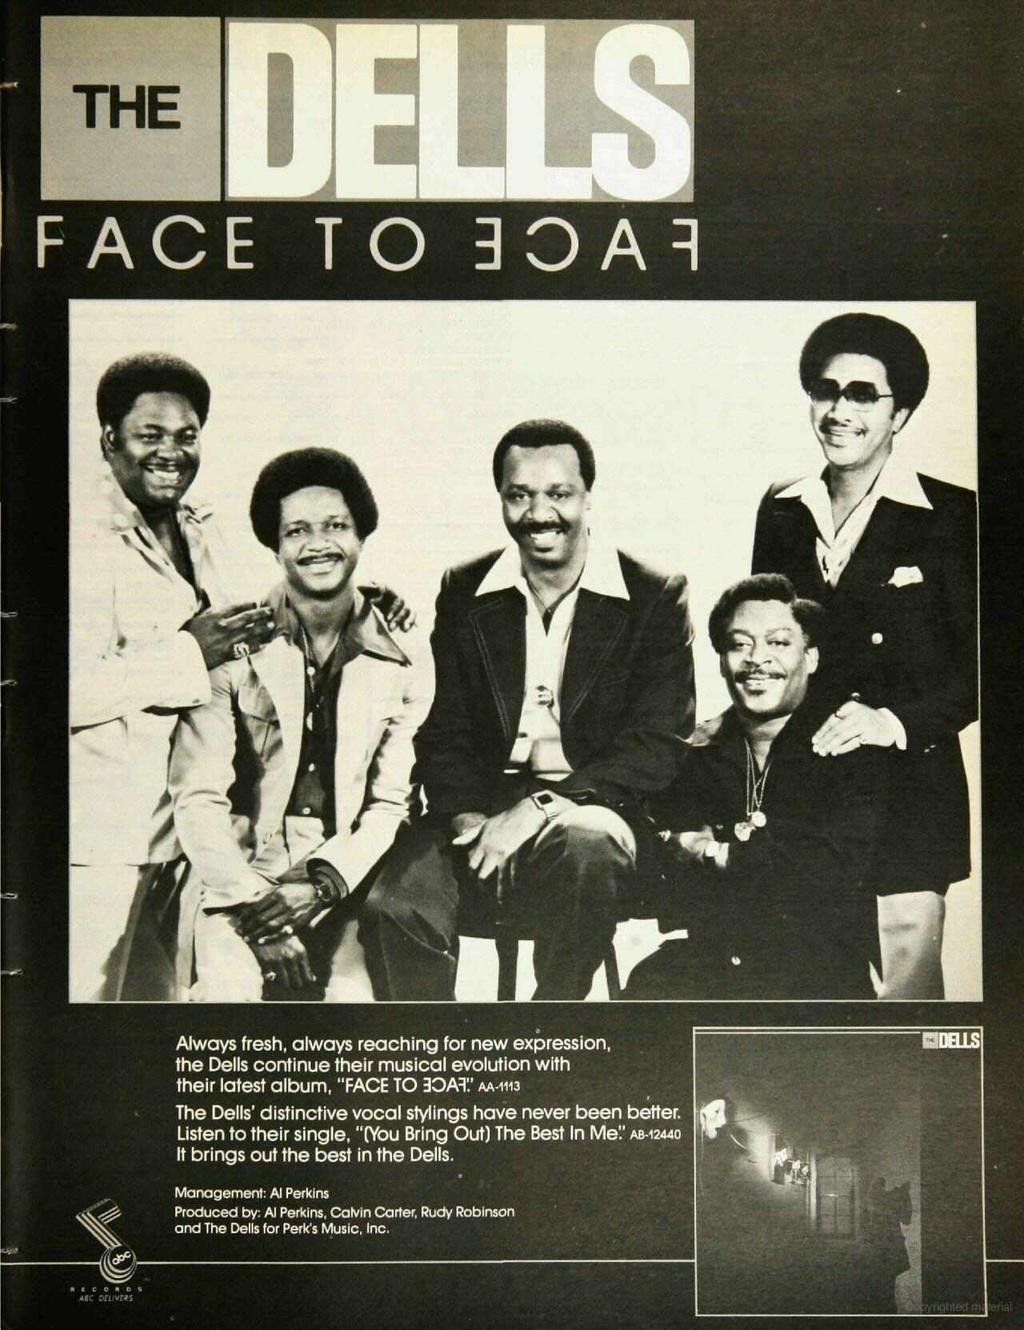 "THE i FACE TO ROAR Always fresh, always reaching for new expression, the Dells continue their musical evolution with their latest album, ""FACE TO ROAR:' M-1113 The Dells' distinctive vocal stylings"